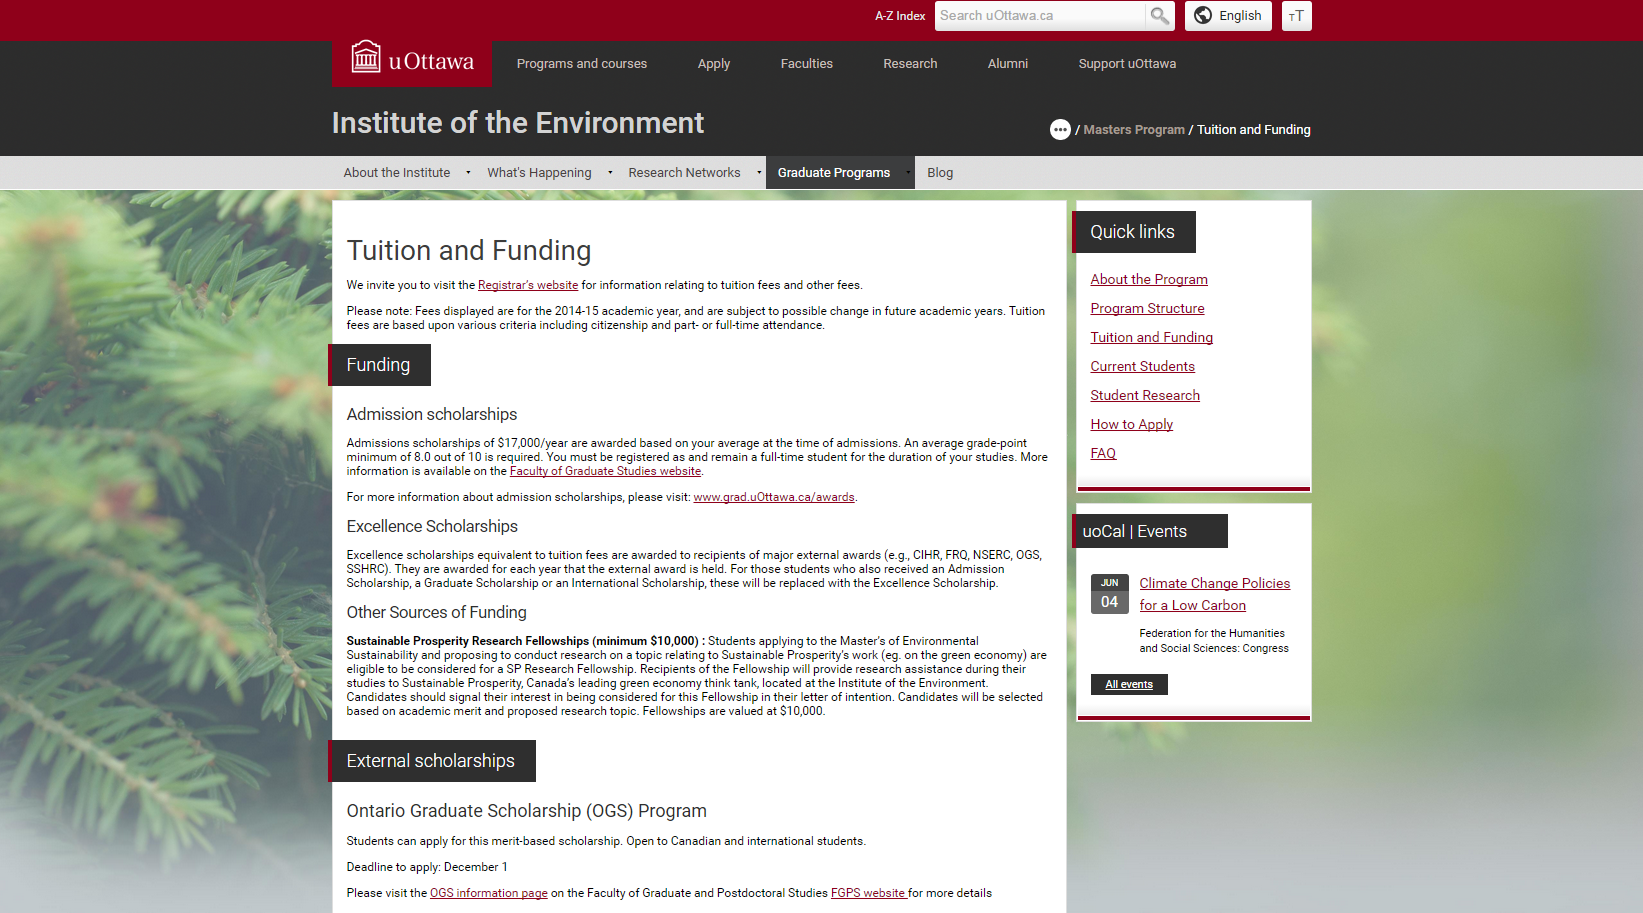 Example of a website using a dynamic background image